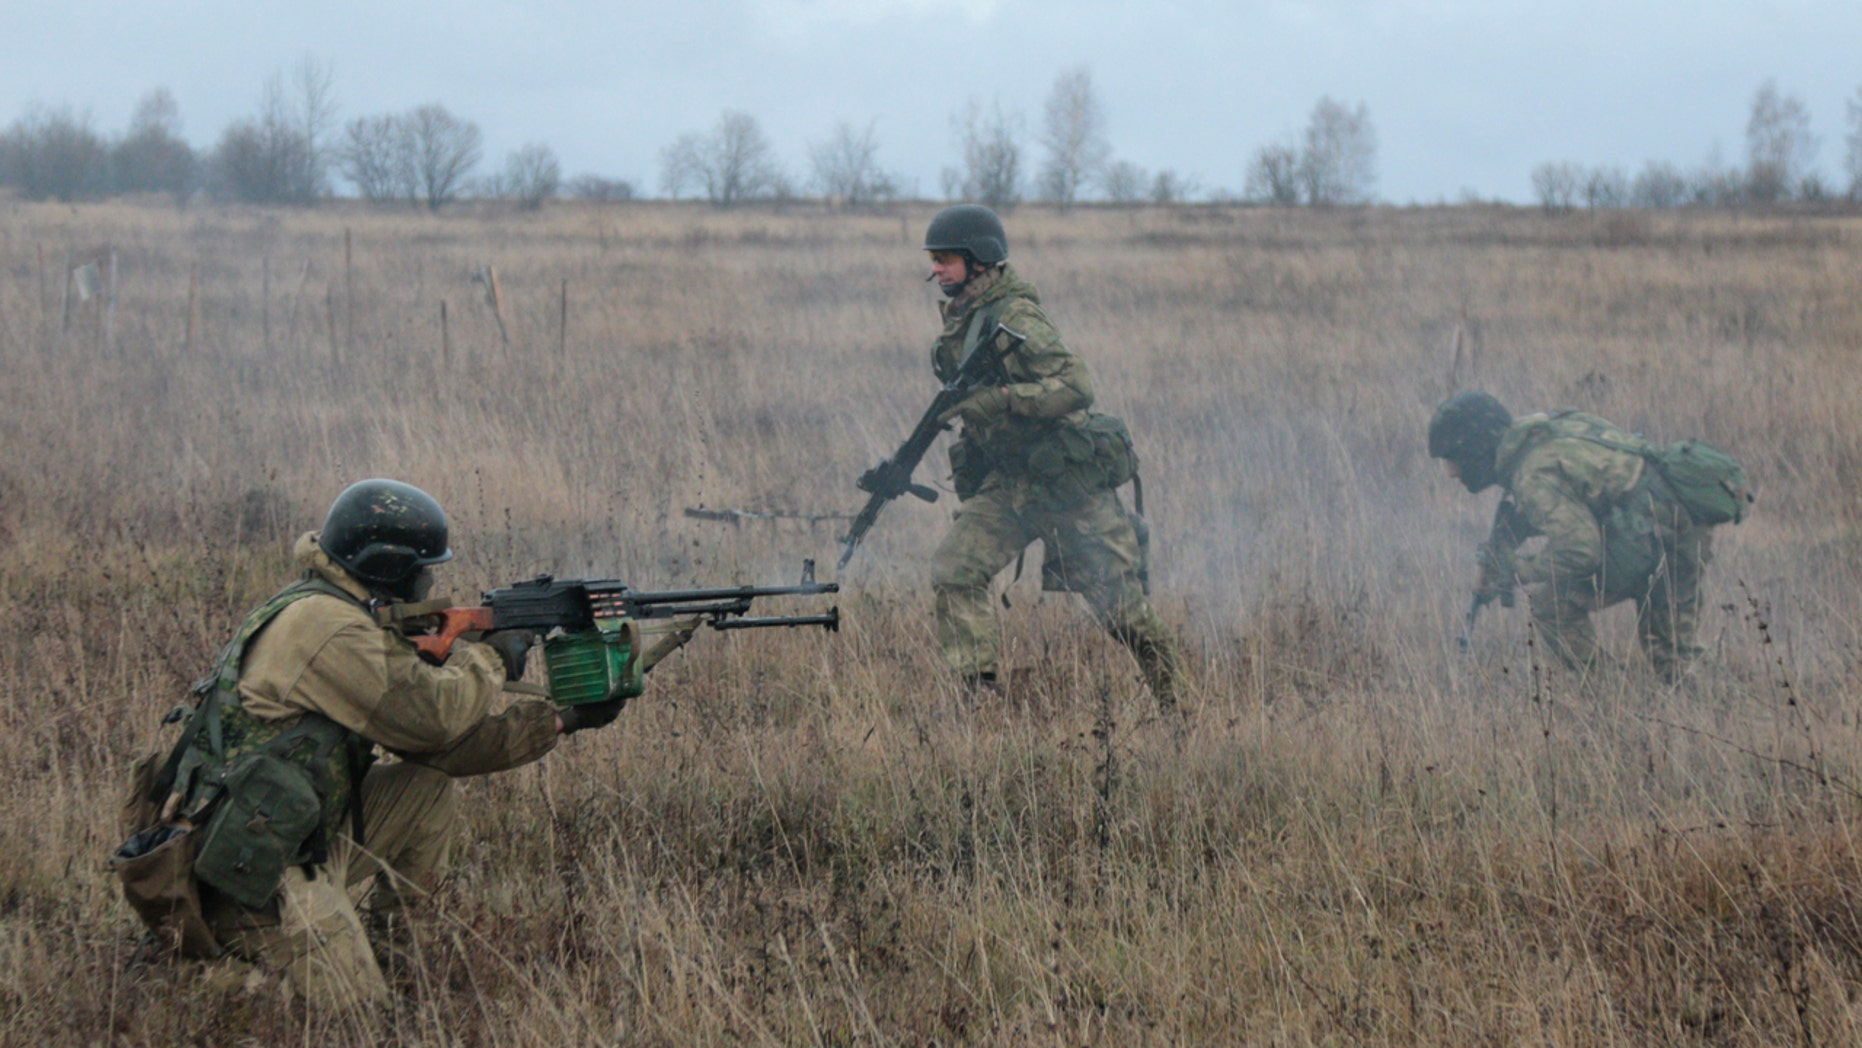 Nov. 21, 2015: US special forces instructors train Ukrainian soldiers at the military training ground in Ukraine's Khmelnitsk region (AP Photo/Aleksandr Shulman)